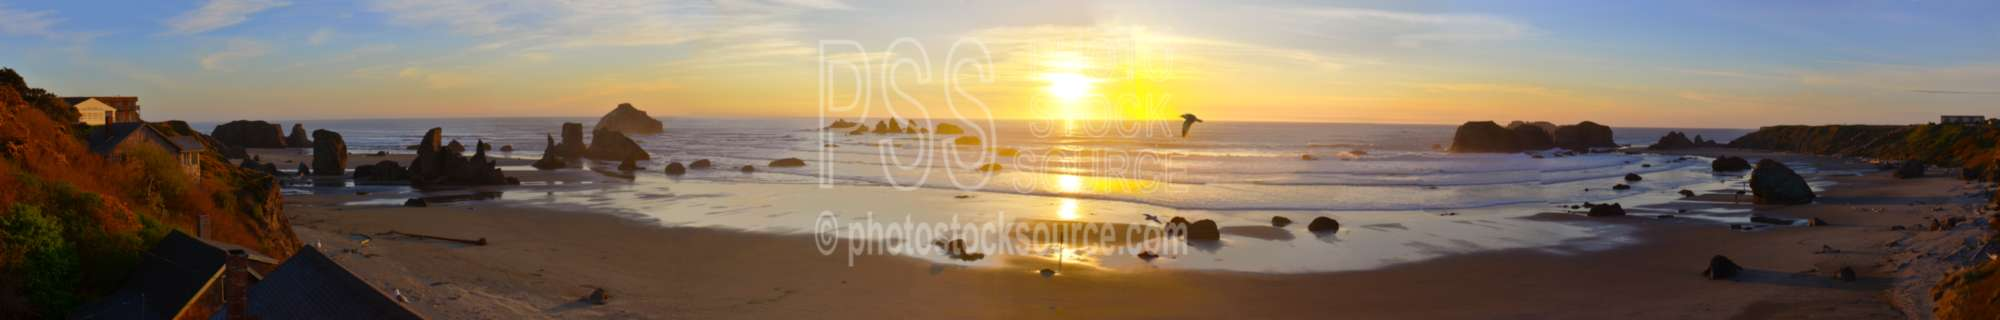 Sunset from Sunset Motel,sunset,beach,rocks,seastacks,ocean,sea